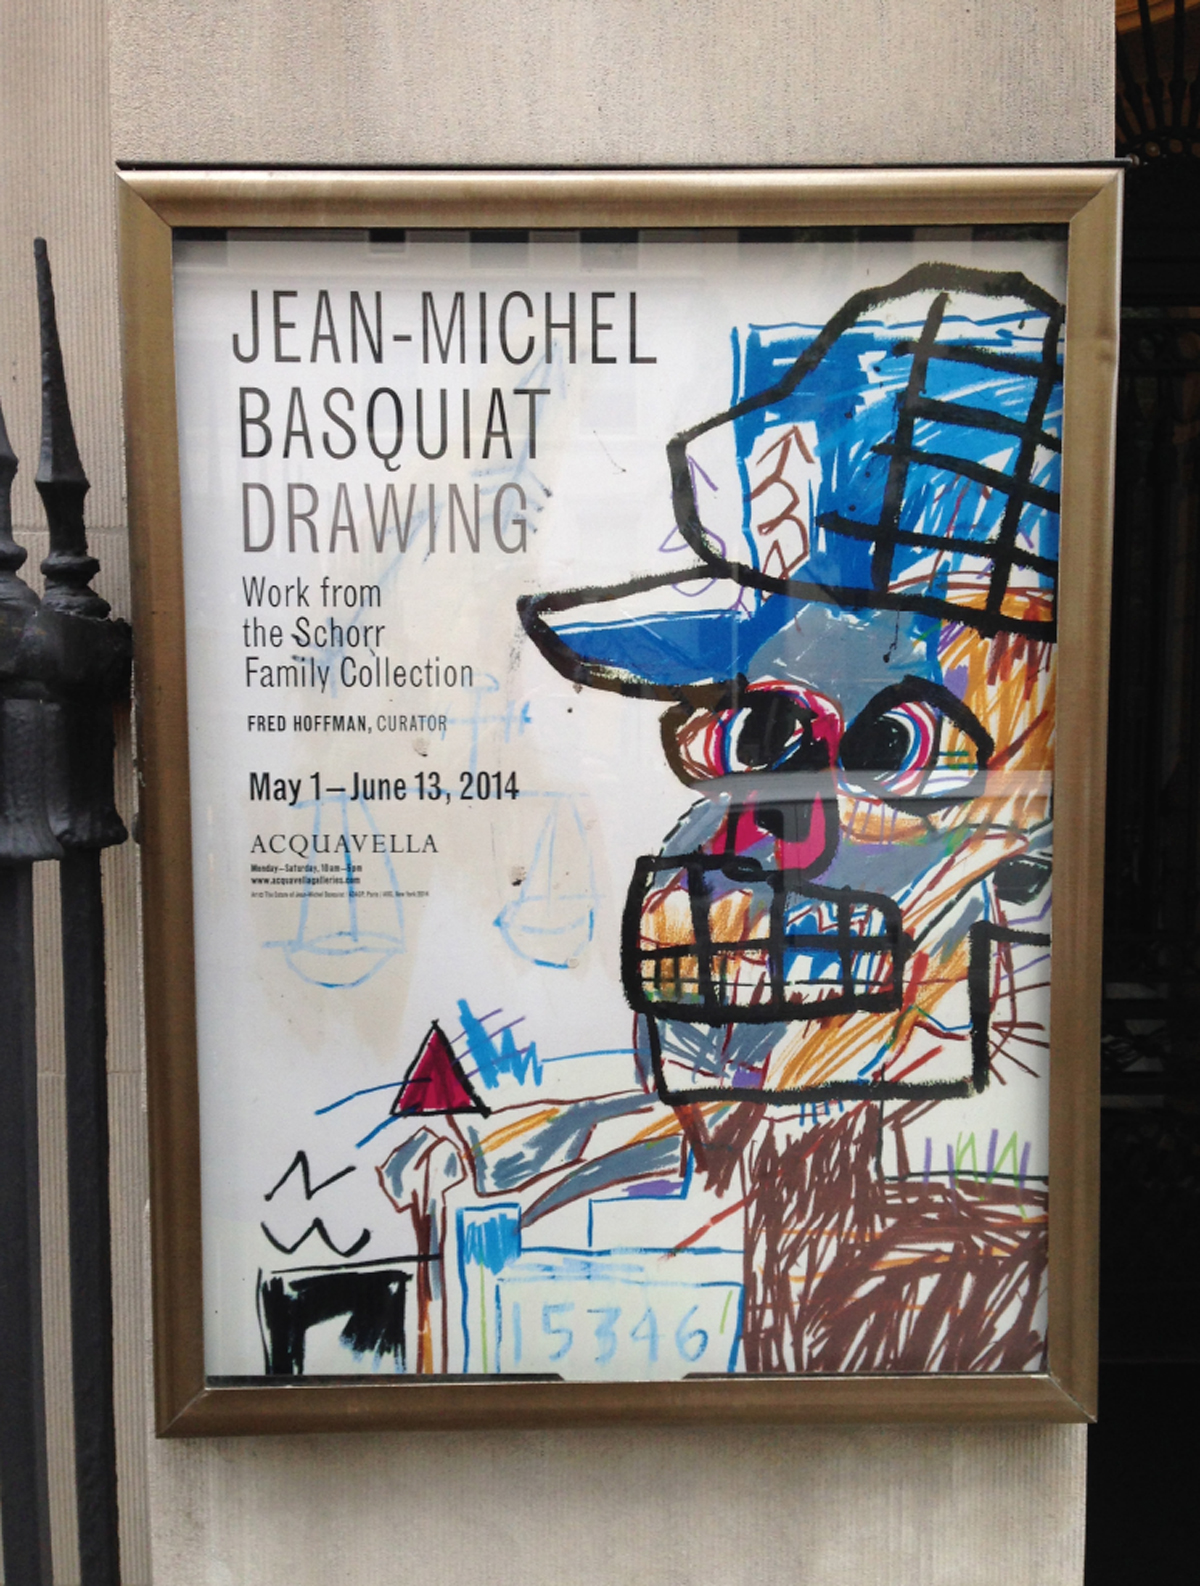 jean michel basquiat drawing work from the schorr family collection